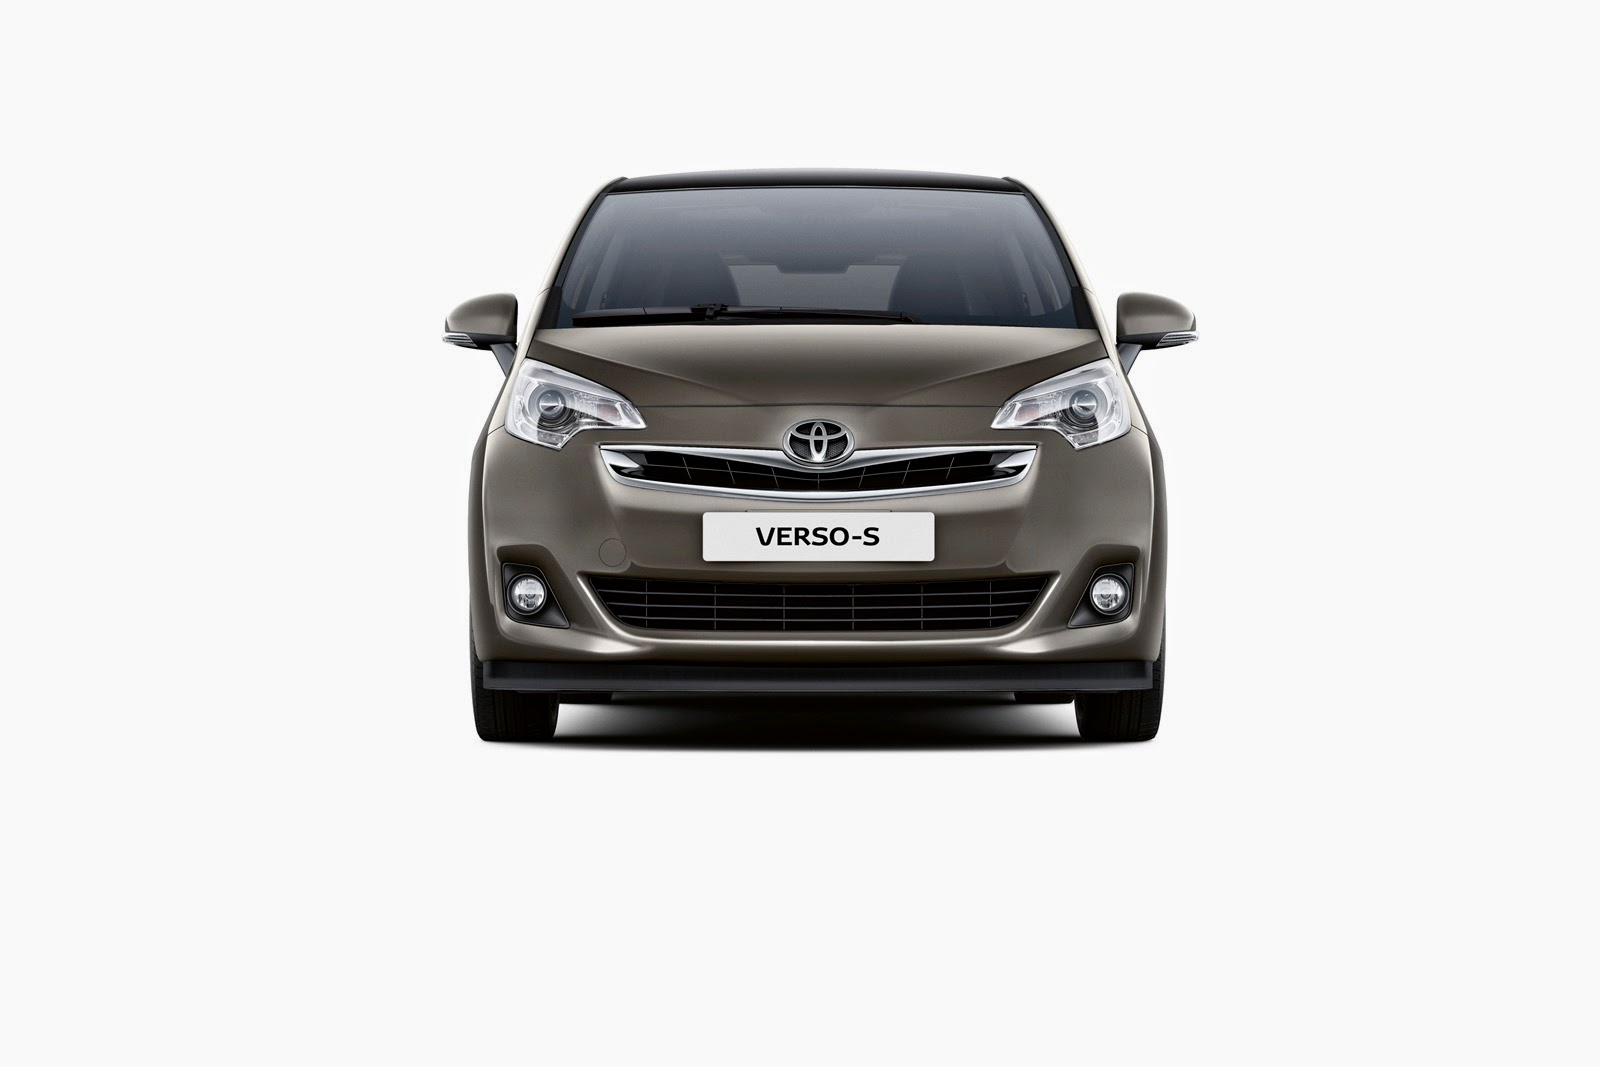 Toyota renewed the Verso-S 2015